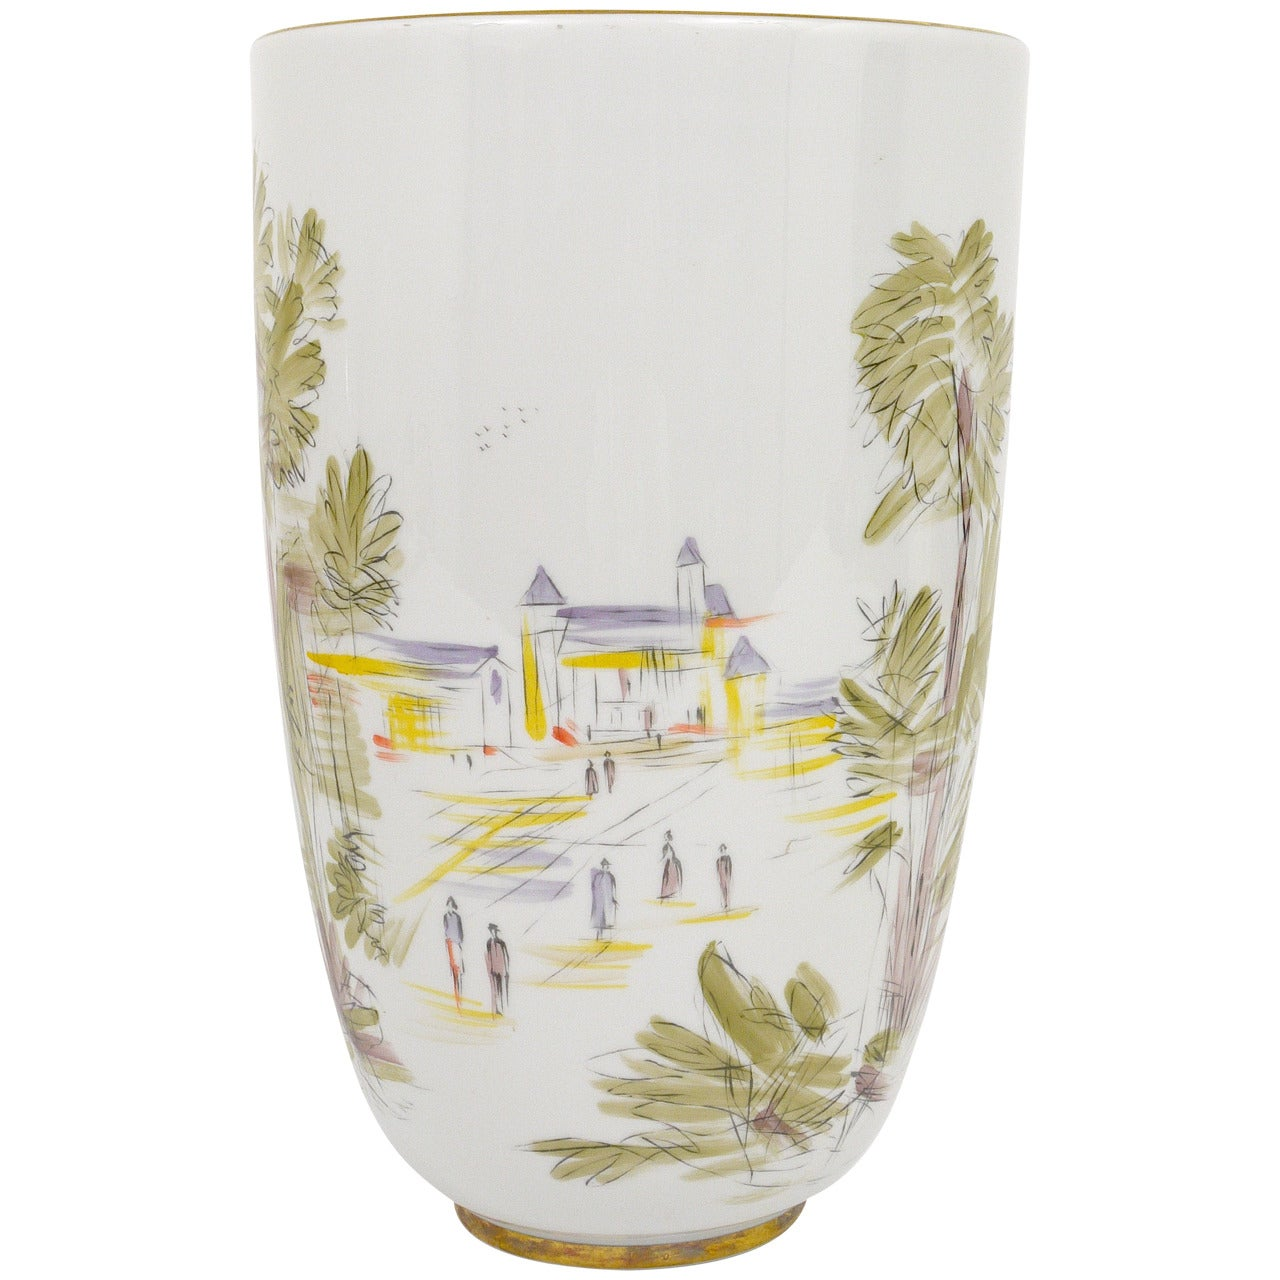 Huge German Mid-Century Handpainted Porcelain Vase by Hutschenreuther, 1950s